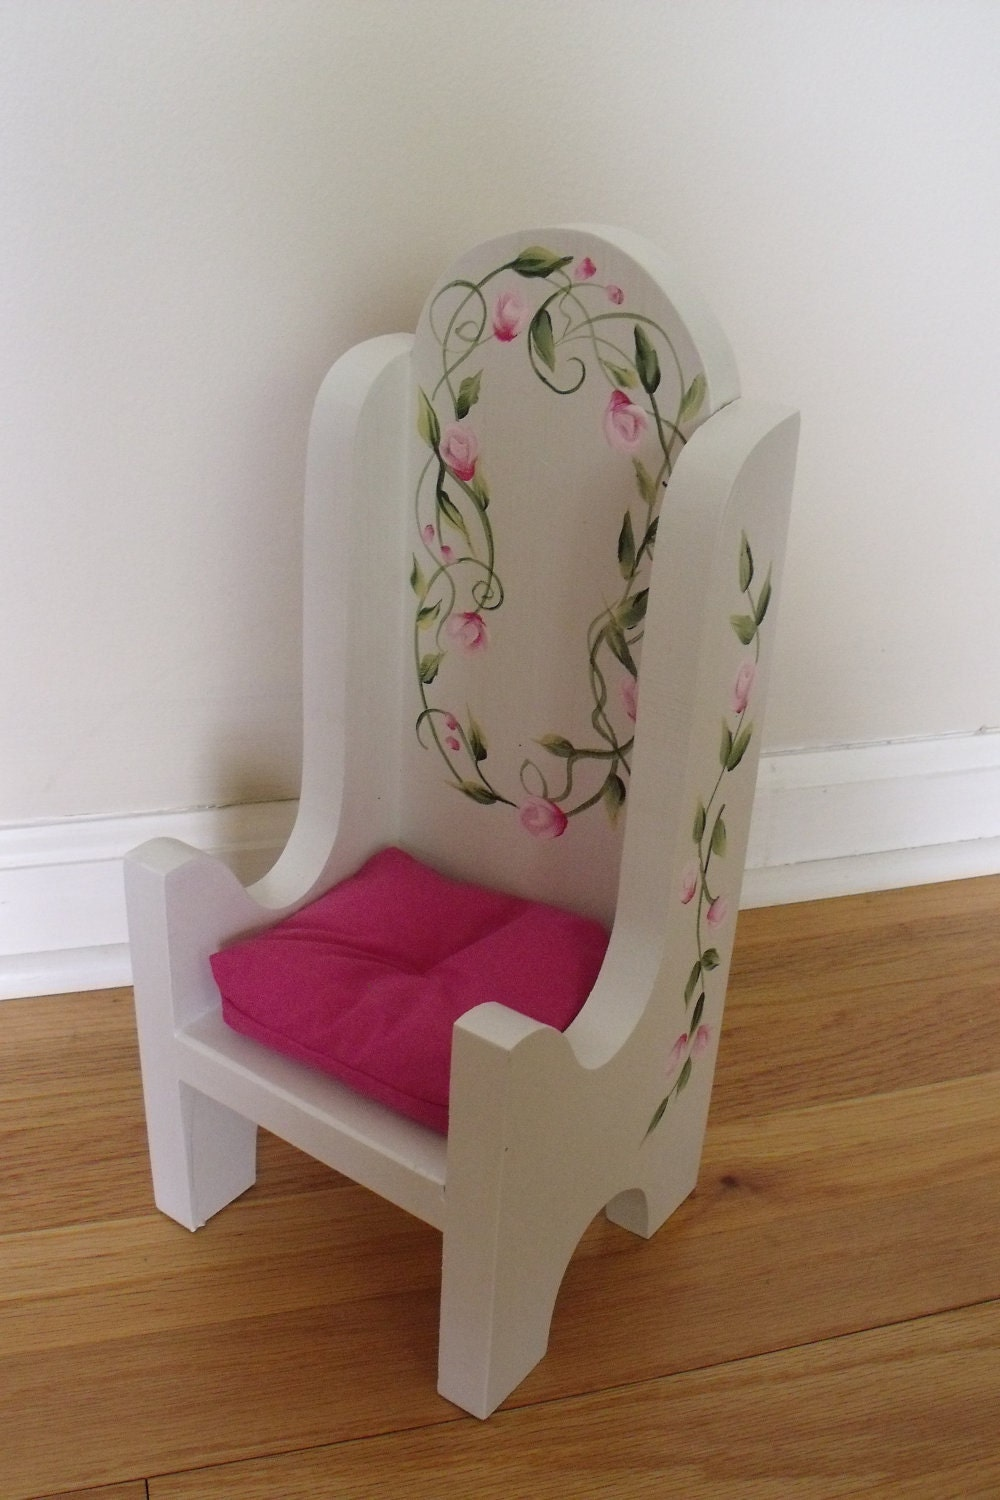 18 Inch American Girl Doll Furniture Wood Doll Chair By Wovenwood